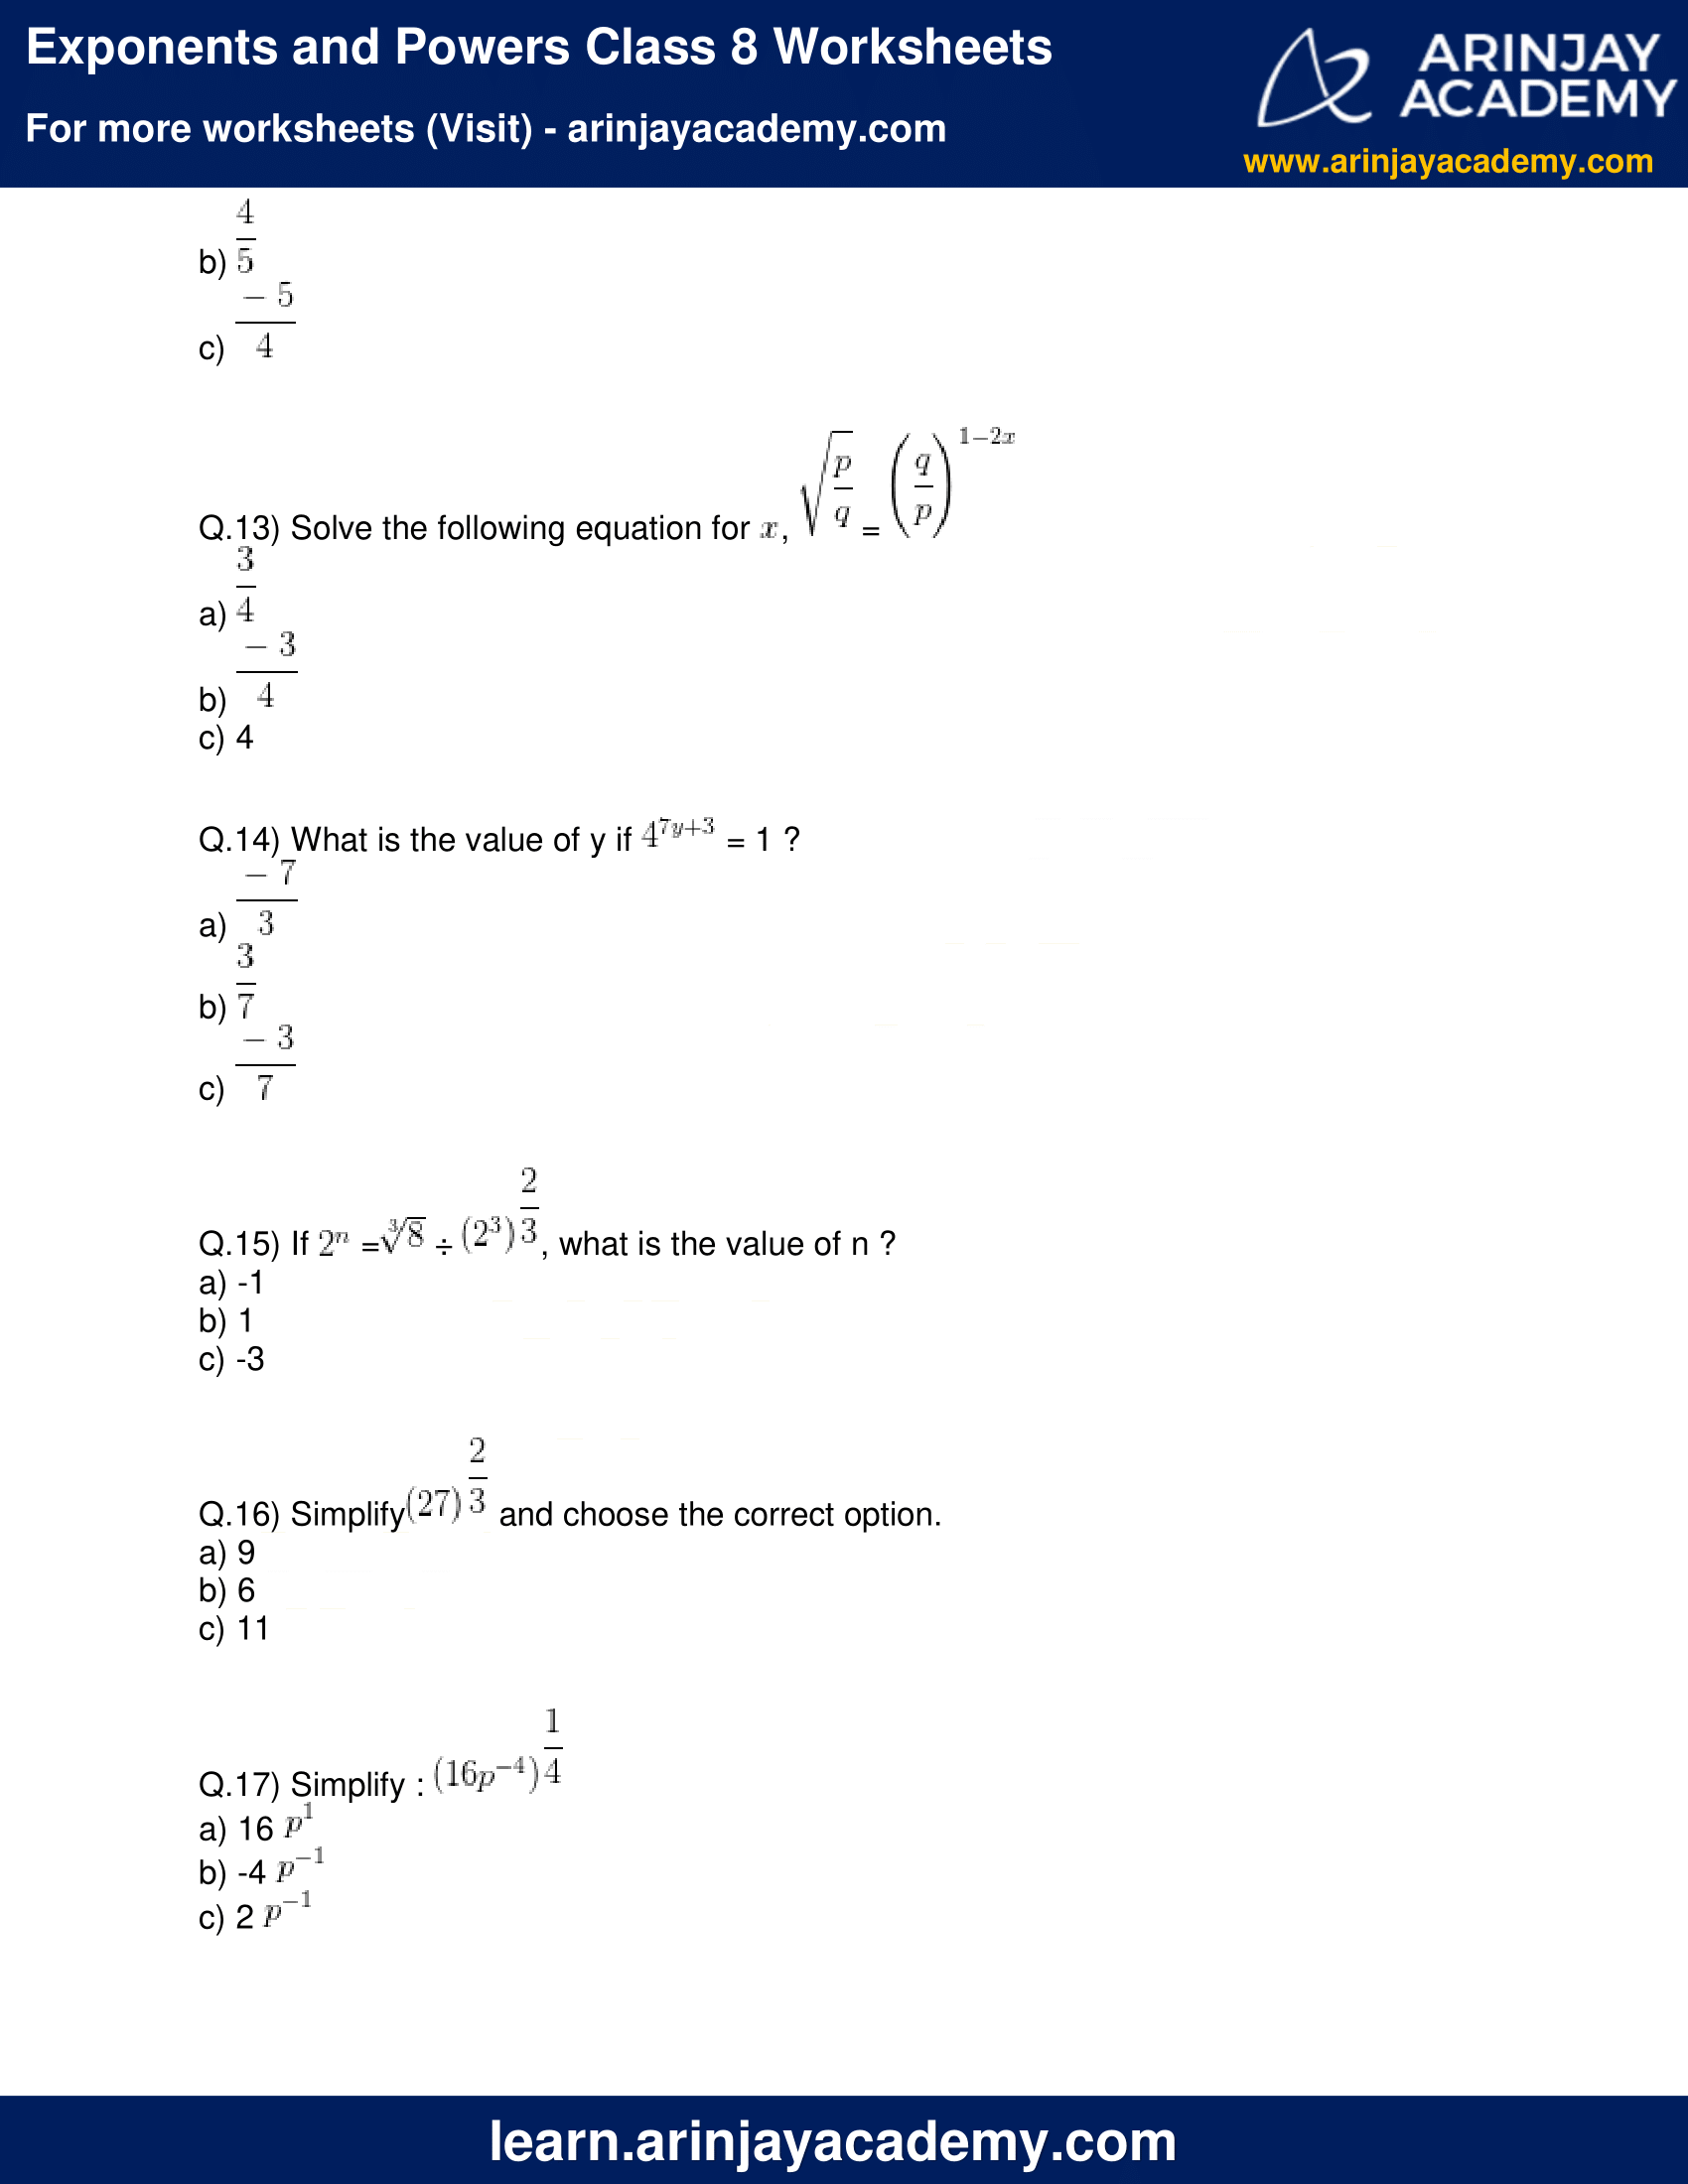 Exponents And Powers Class 8 Worksheets